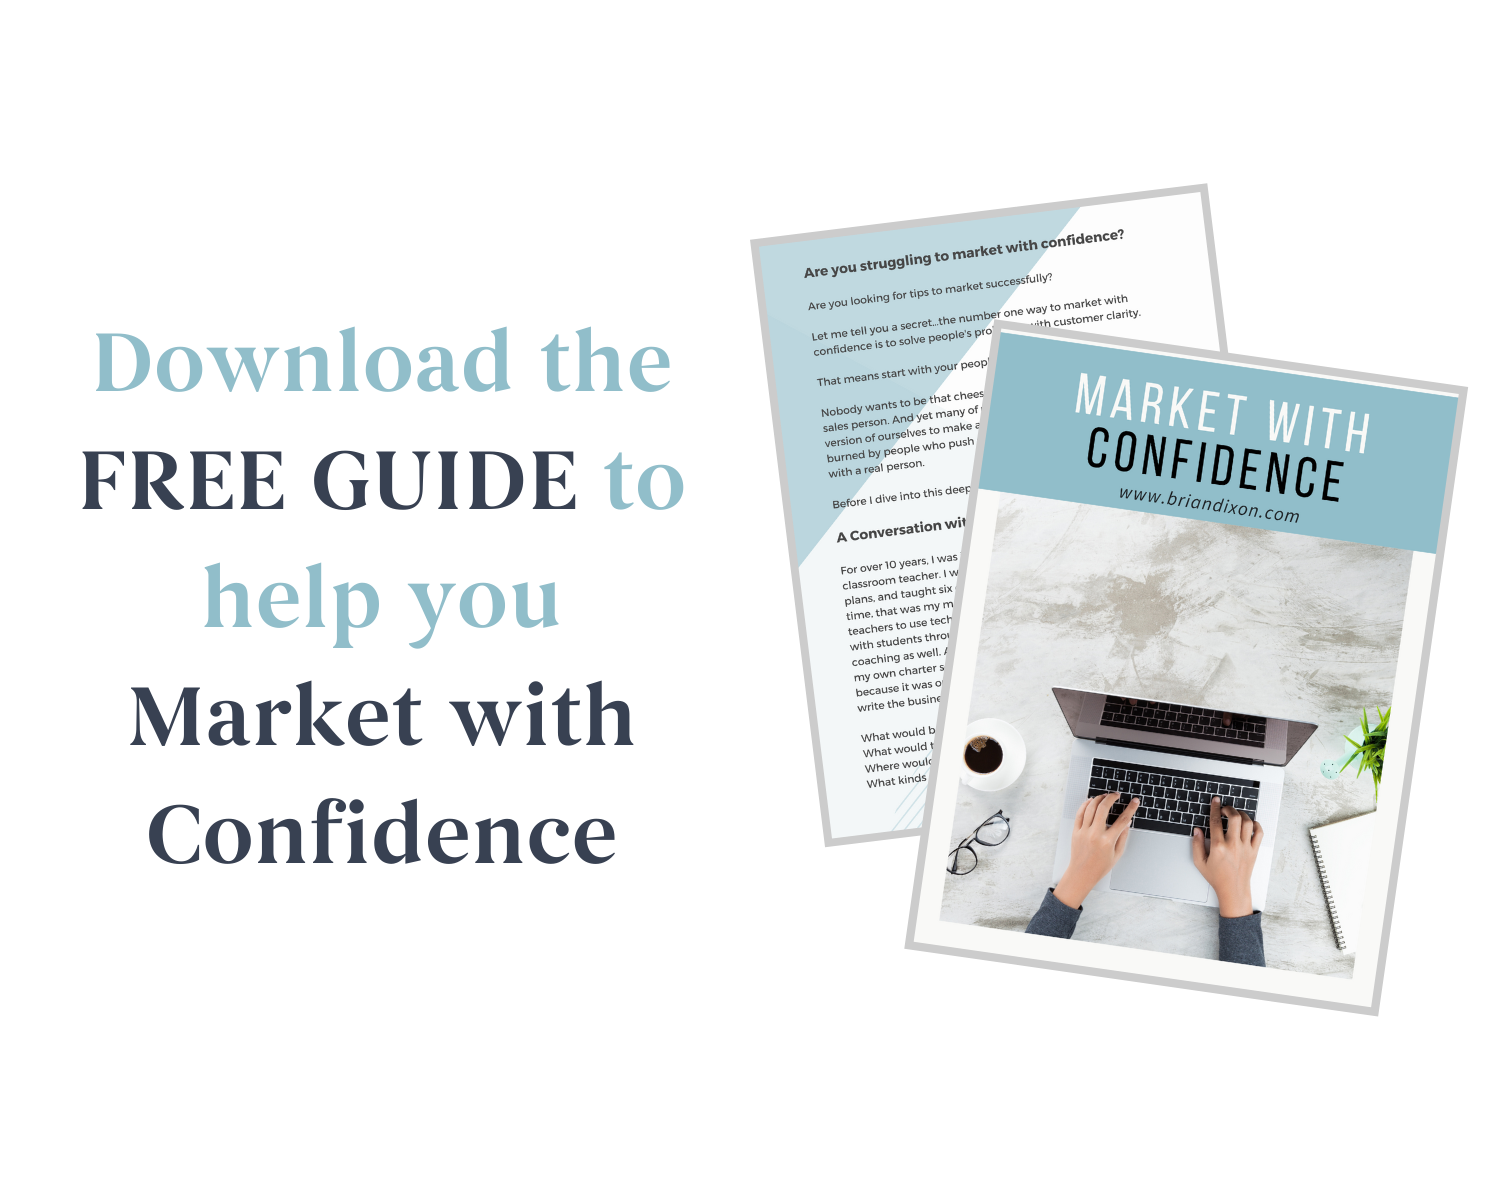 Download The Free Guide to help you Market With Confidence